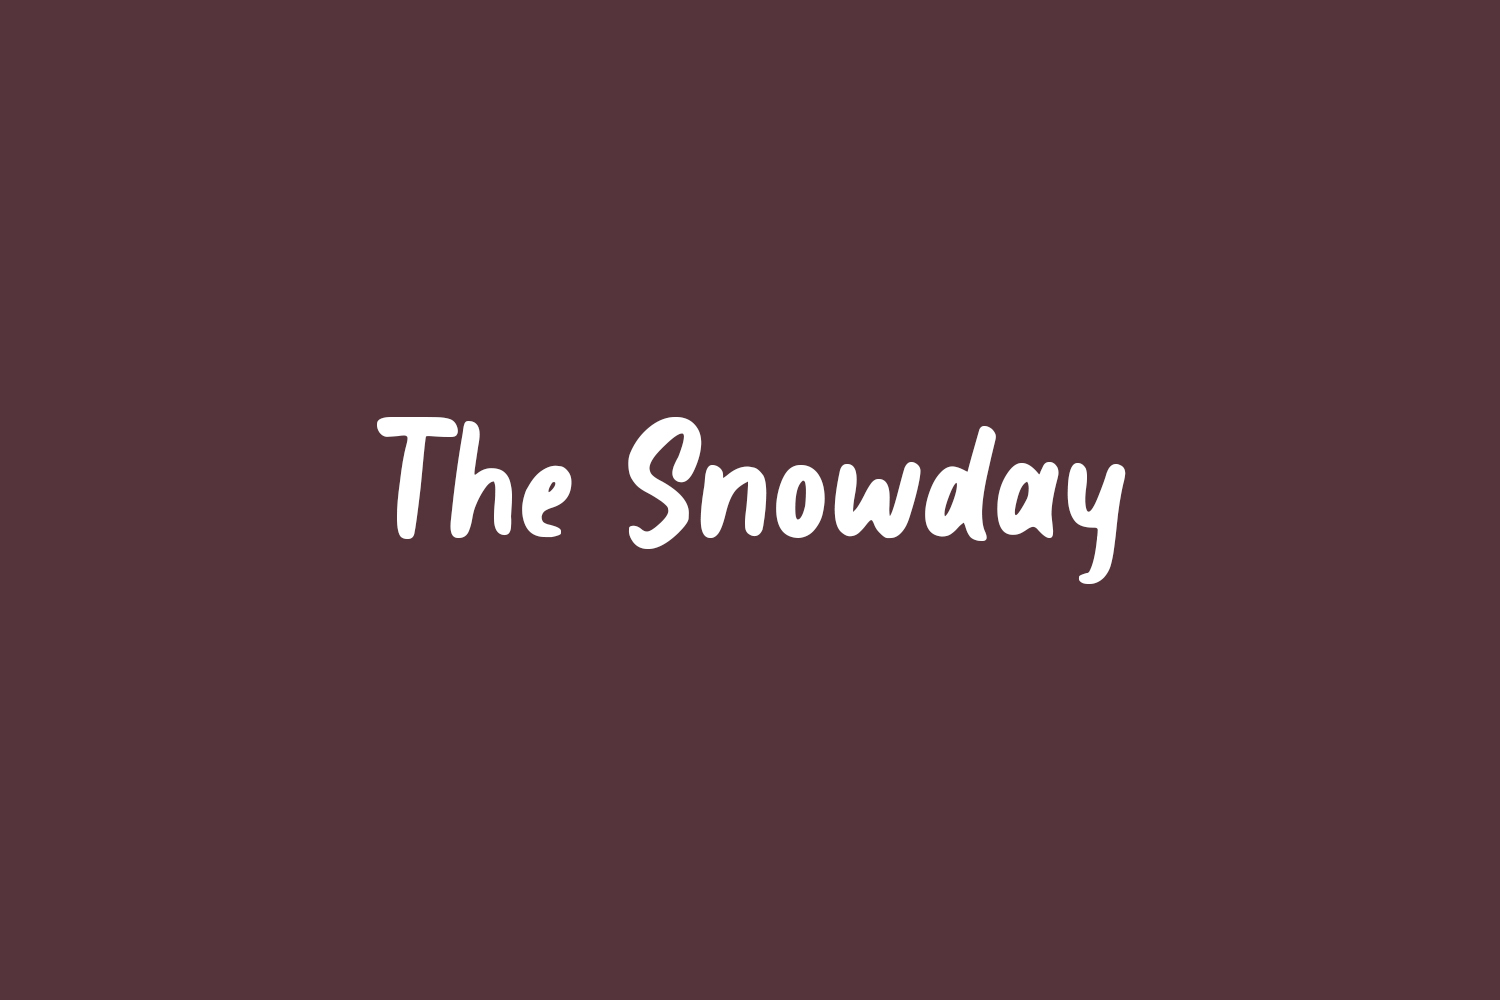 The Snowday Free Font